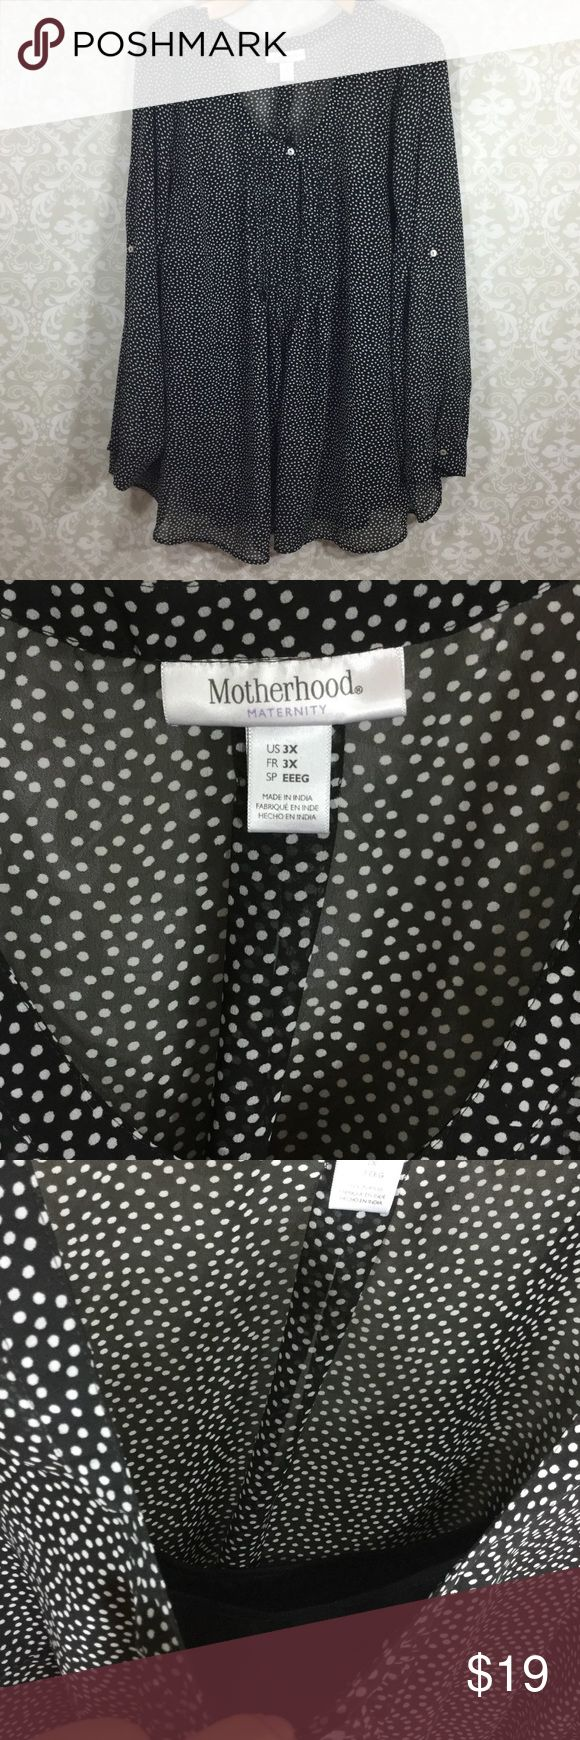 Motherhood Maternity 3X plus size polka dot blouse Excellent condition, minimal to no wear seen. Size 3X. Sleeves can be adjusted to 3/4 sleeve. Attached black cami. Motherhood Maternity Tops Blouses